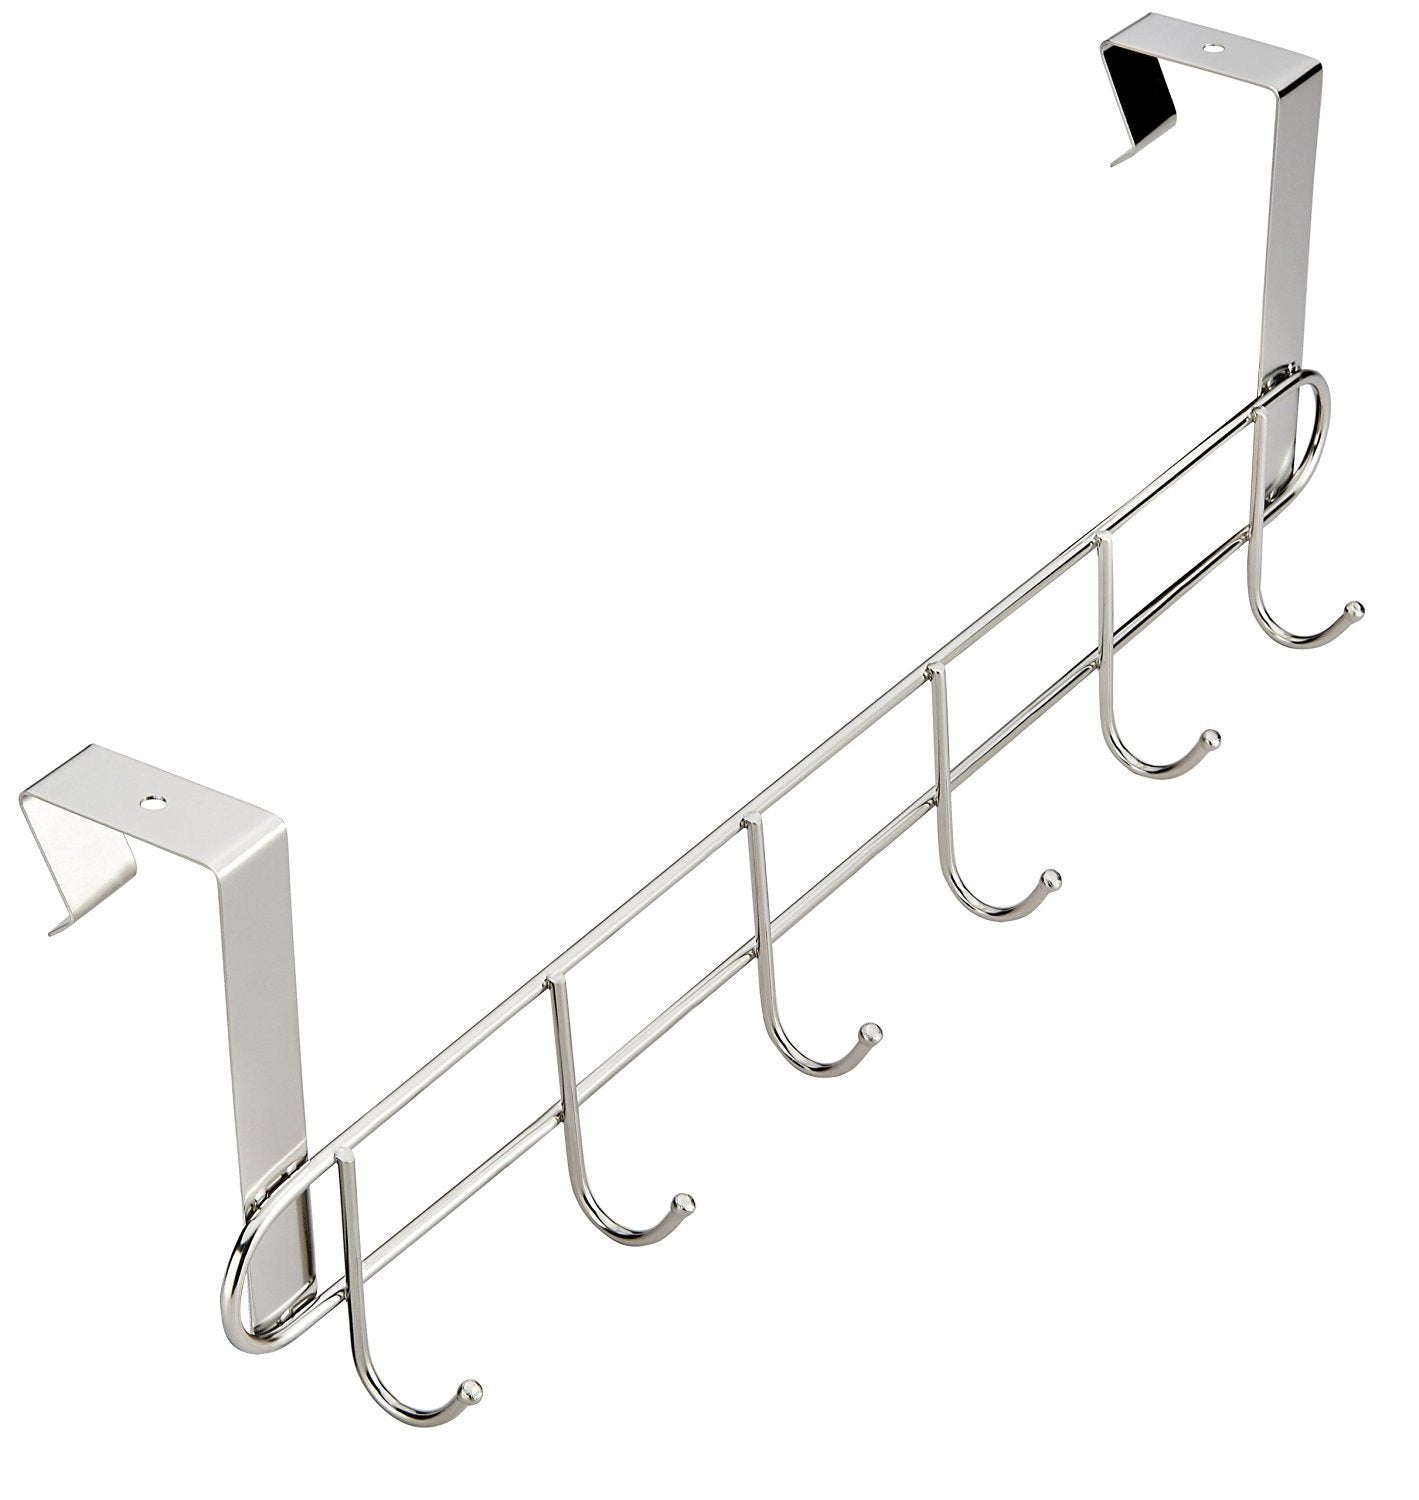 Over The Door Hook - General Purpose Storage Racks - 6 Coat Hooks